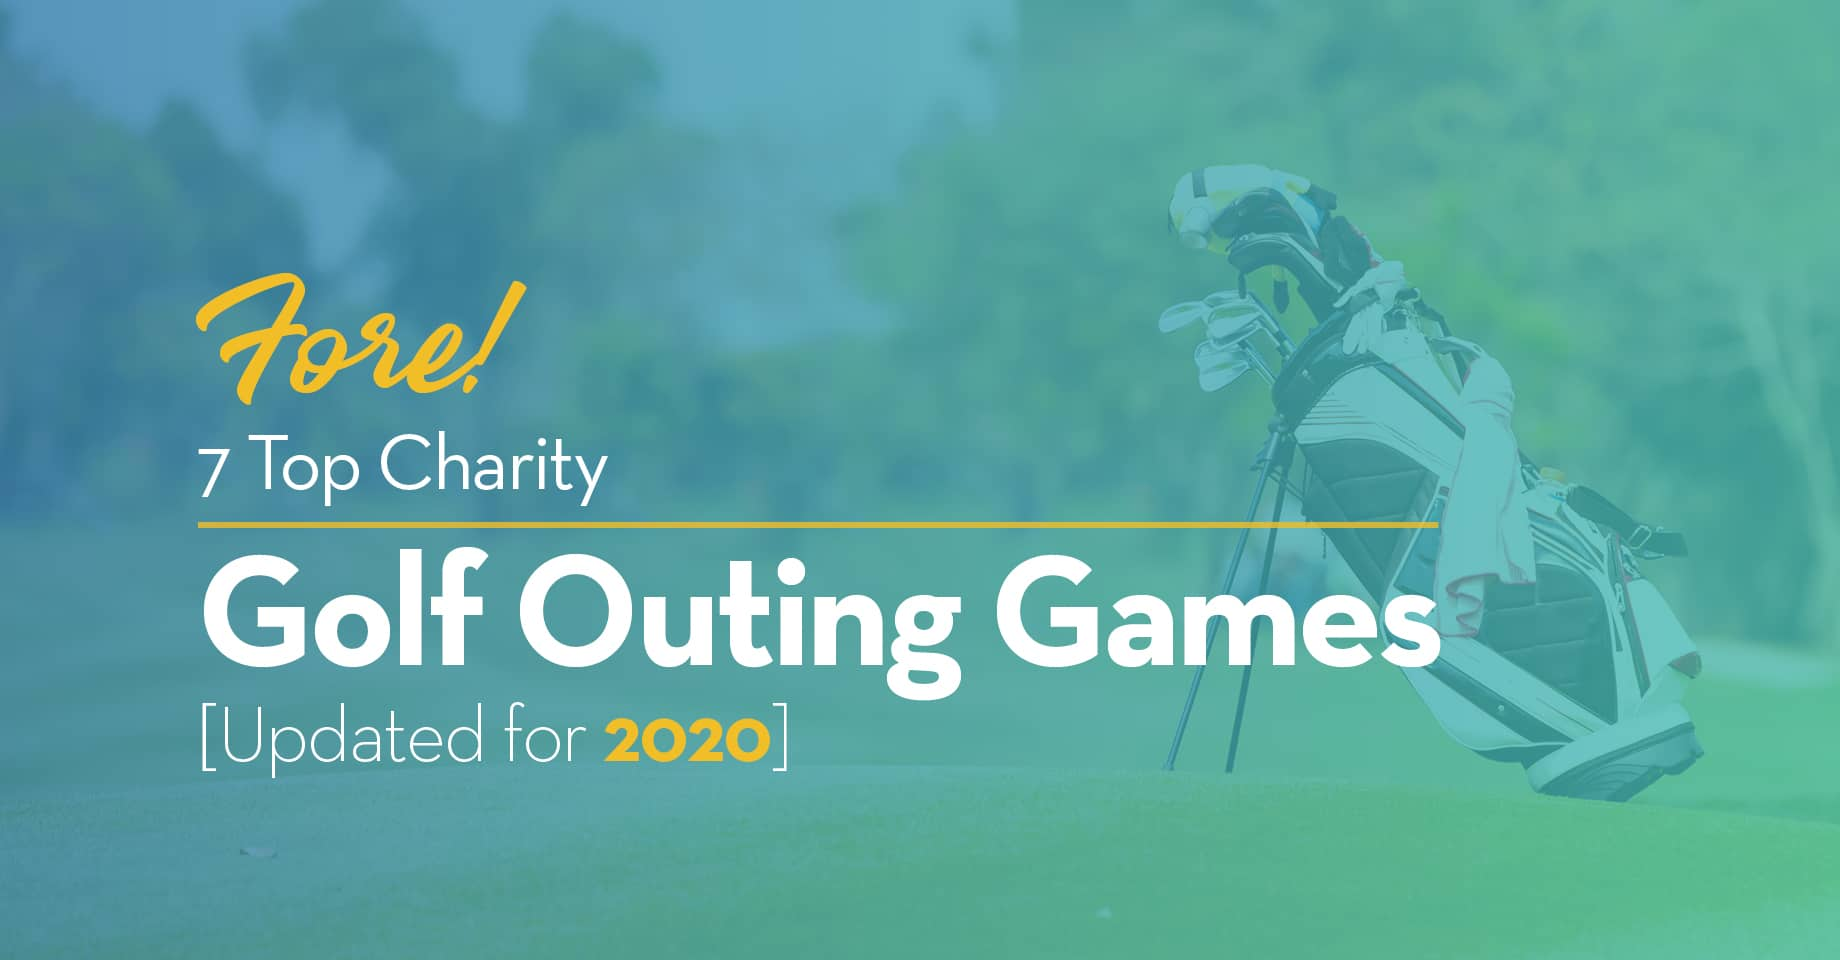 Fore! 7 Top Charity Golf Outing Games [Updated for 2020]